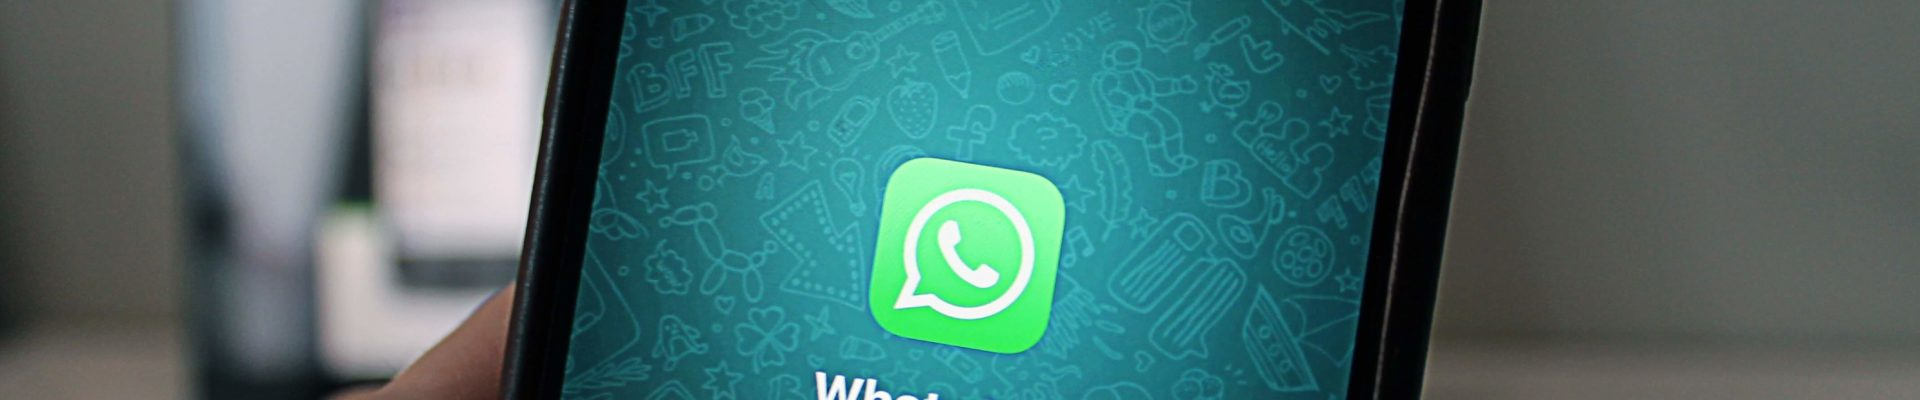 WhatsApp Bringing Fingerprint Security Feature for Users